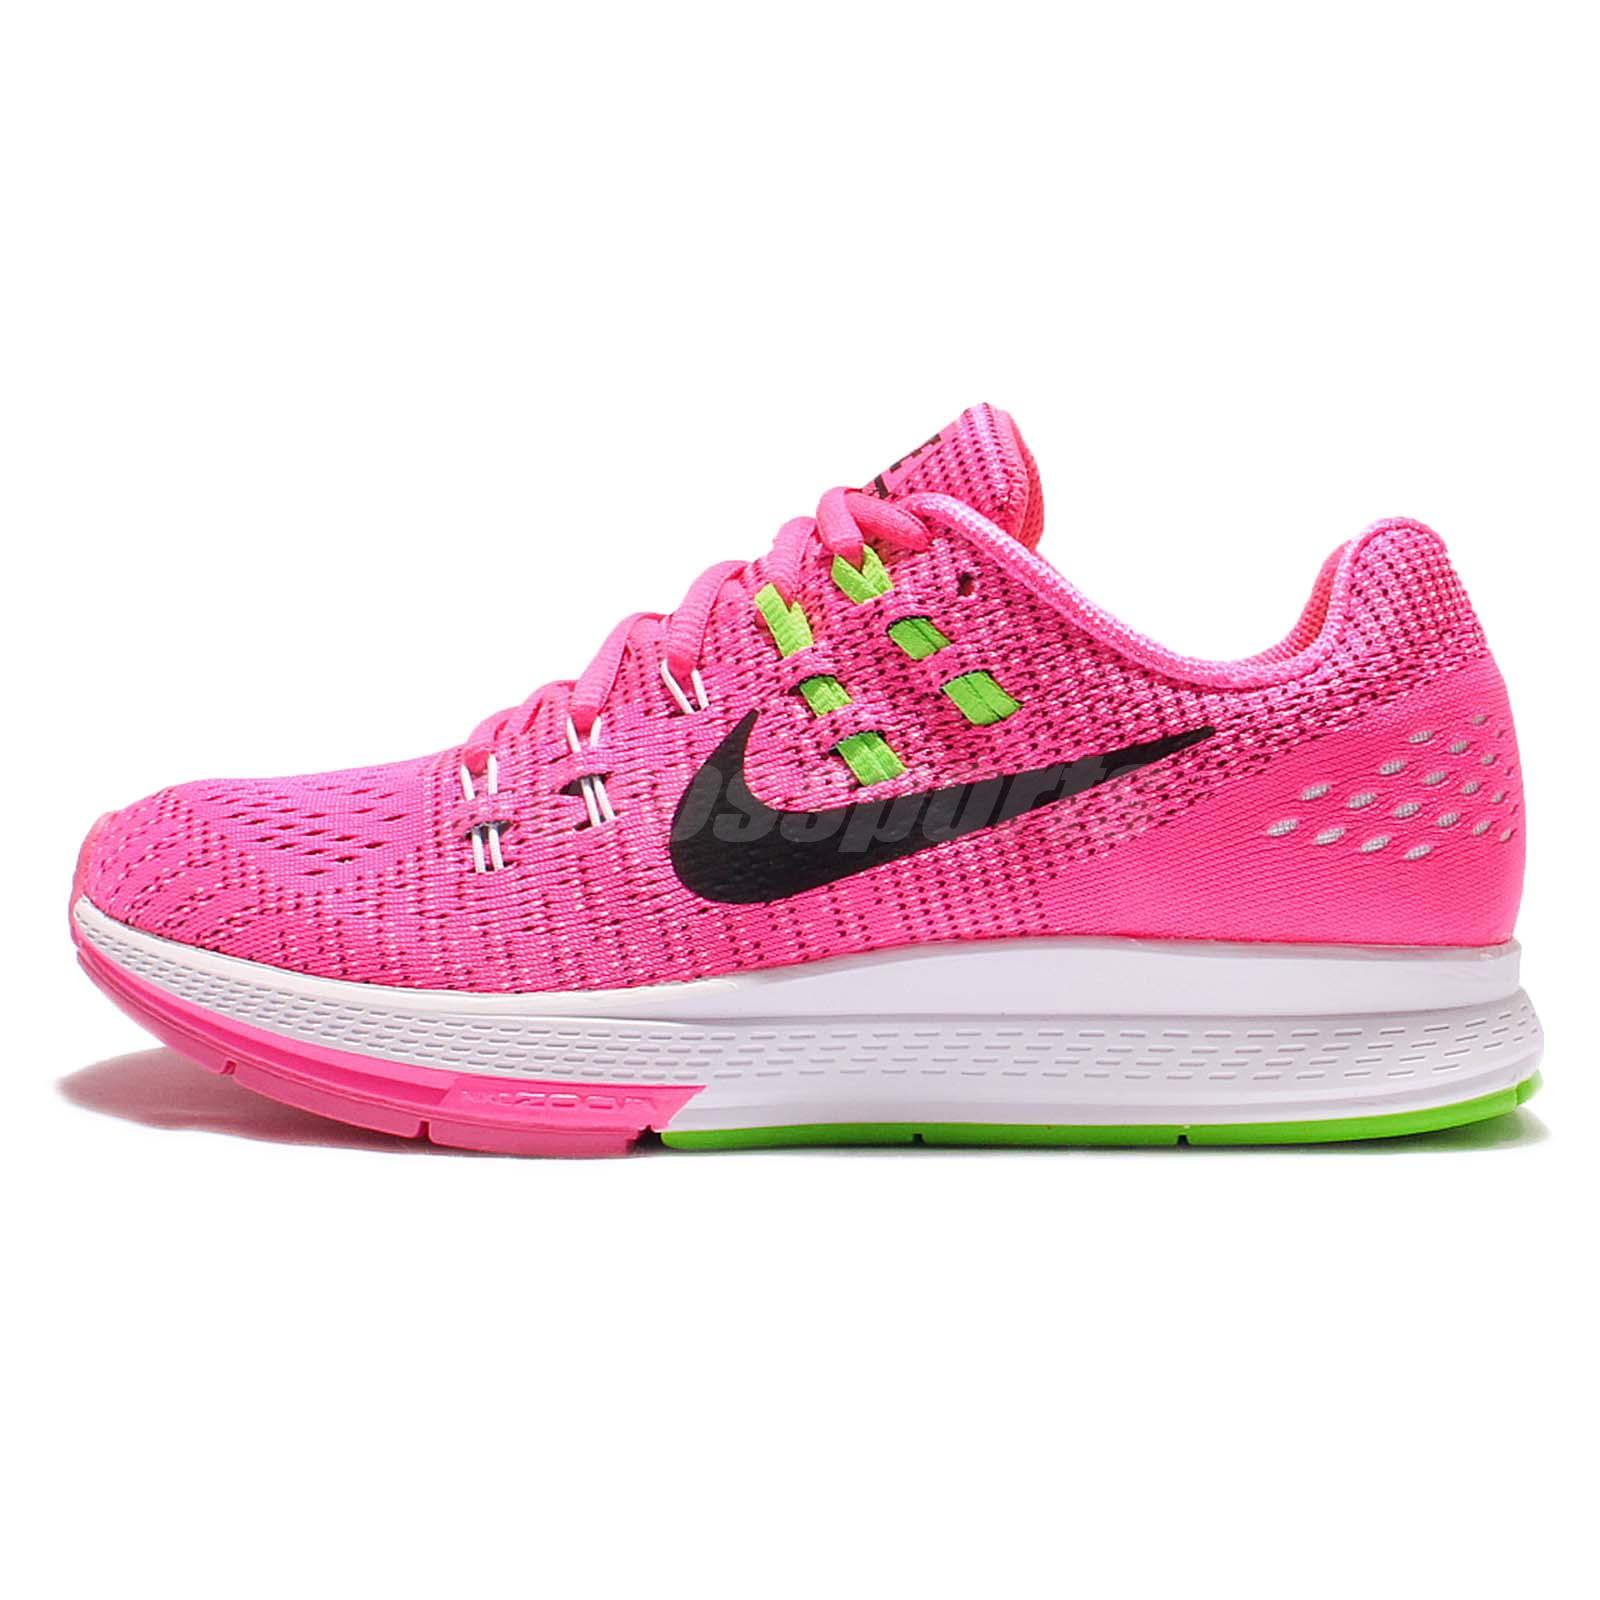 637d7f83f41d Wmns Nike Air Zoom Structure 19 Pink Black Womens Running Trainers  806584-600